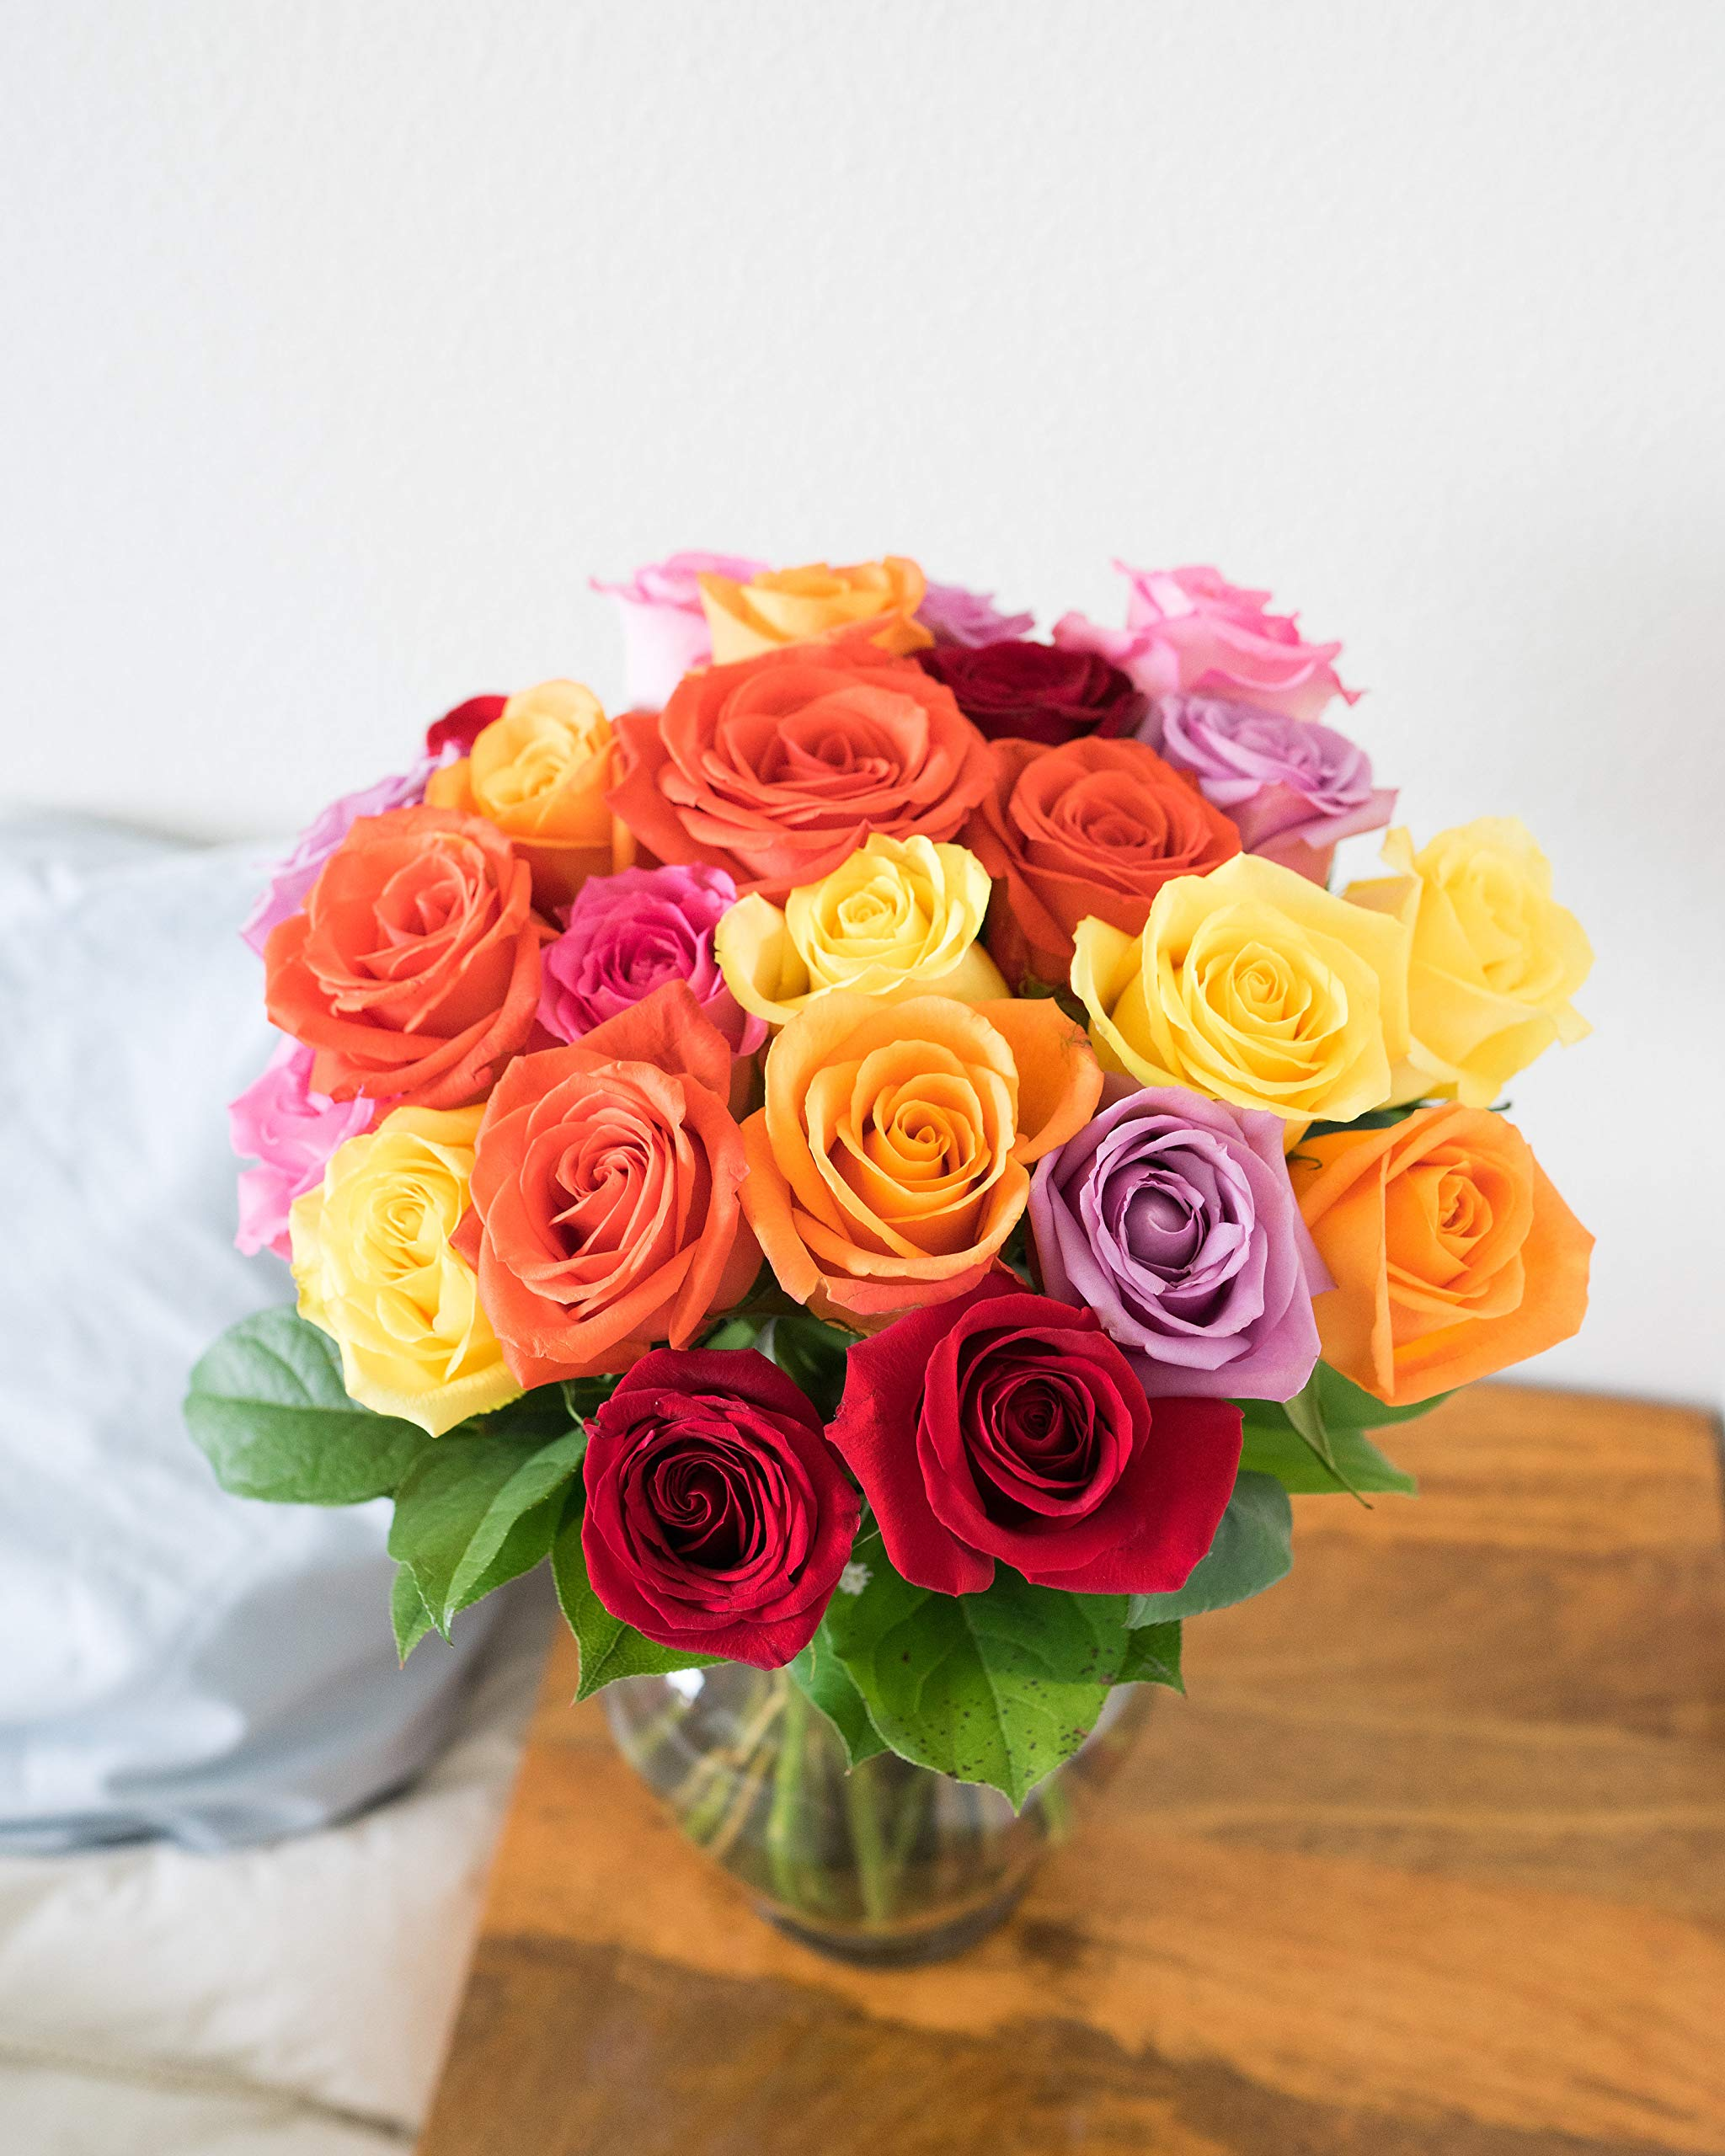 Flowers - Two Dozen Rainbow Roses with Godiva & Bear (Free Vase Included) by From You Flowers (Image #3)